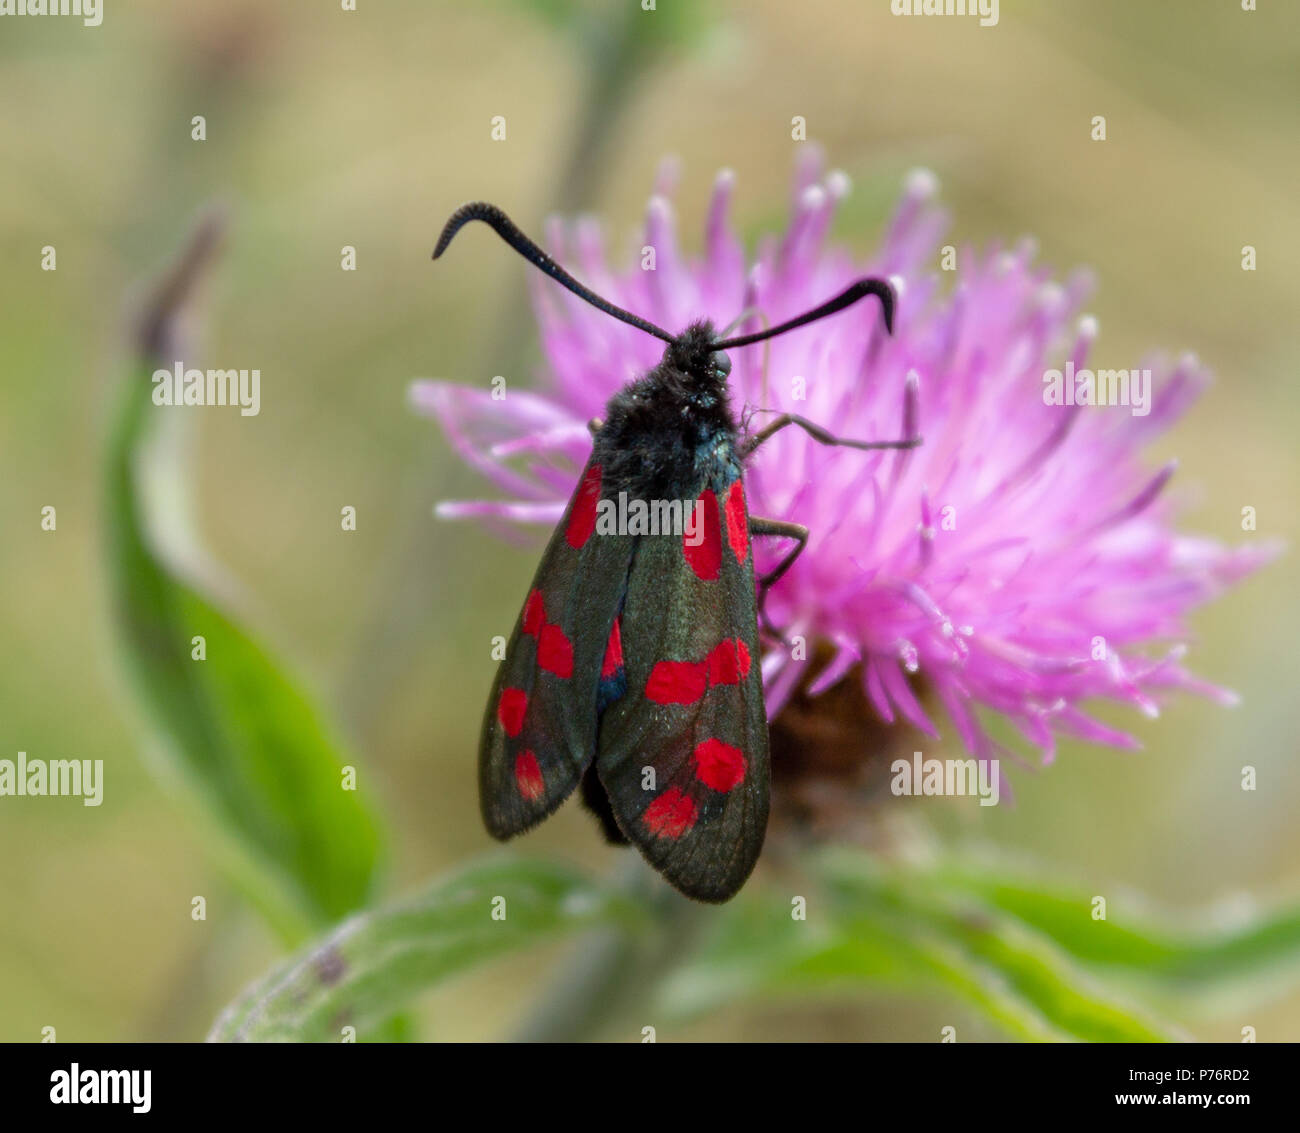 zygaena-filipendulae-6-spotted-burnet-moth-feeding-on-a-clover-flower-P76RD2.jpg